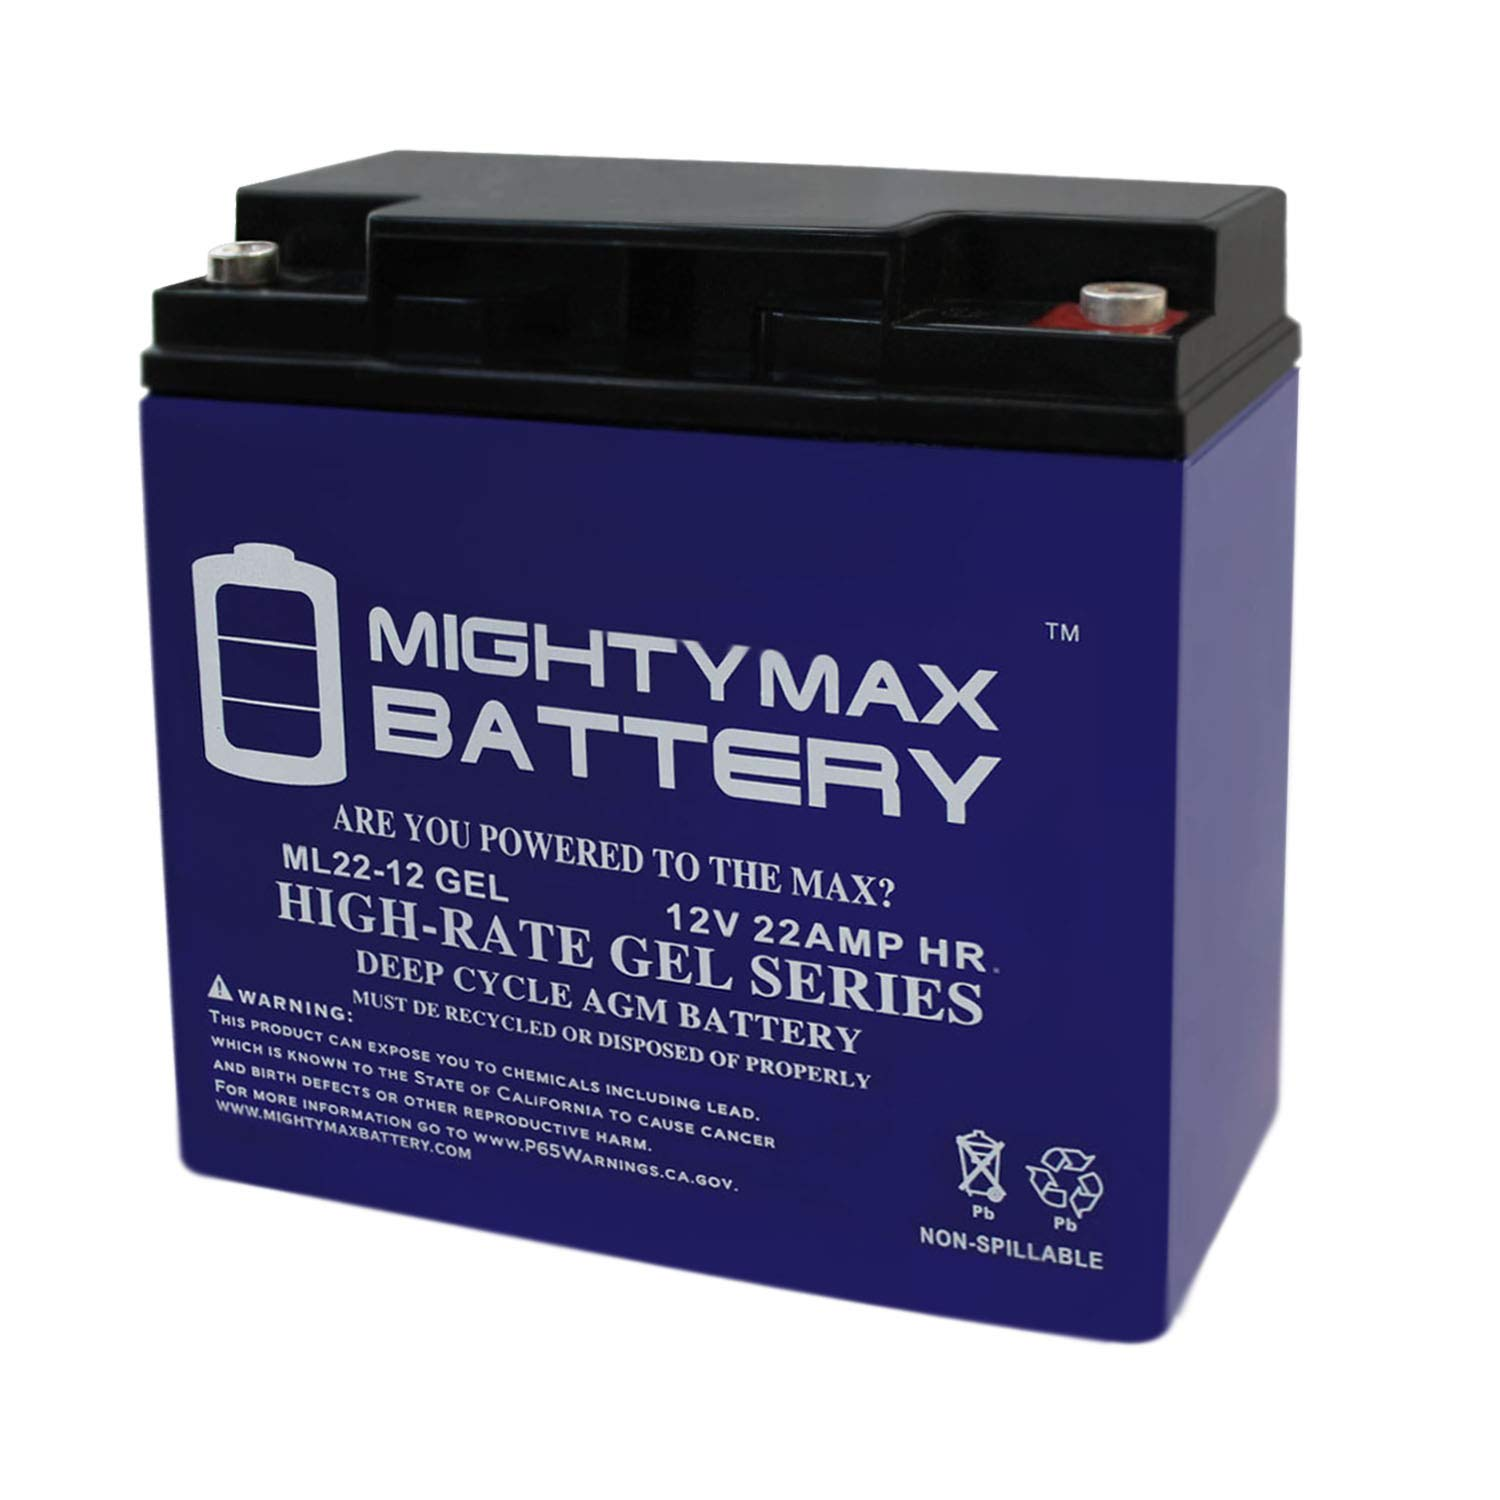 Mighty Max Battery Gel